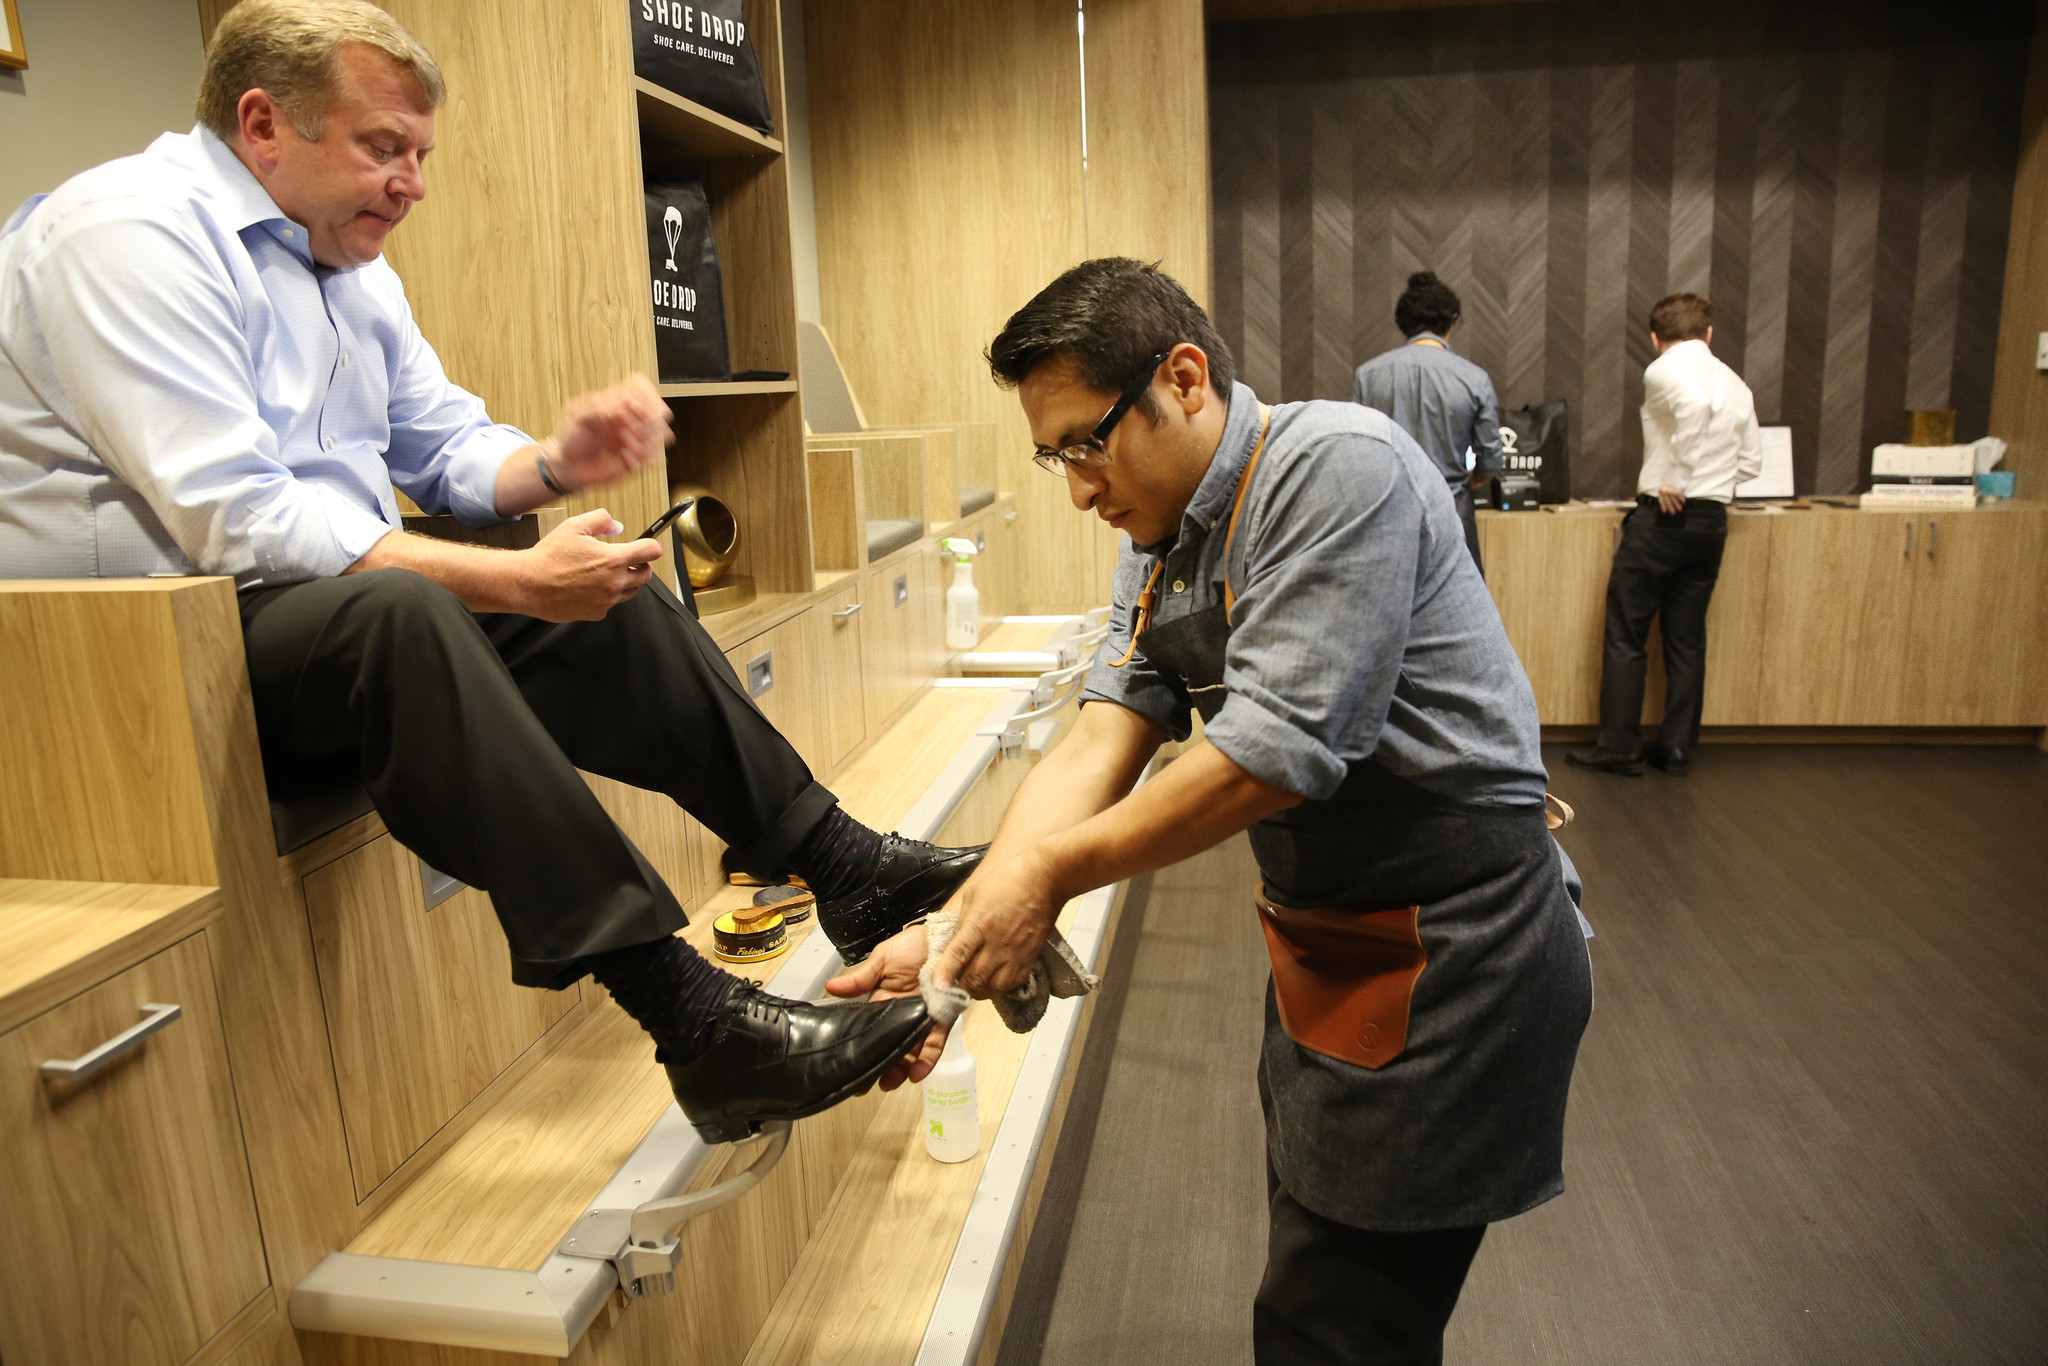 Shoe Drop Shoe Repair Startup Buffs Up With Old School